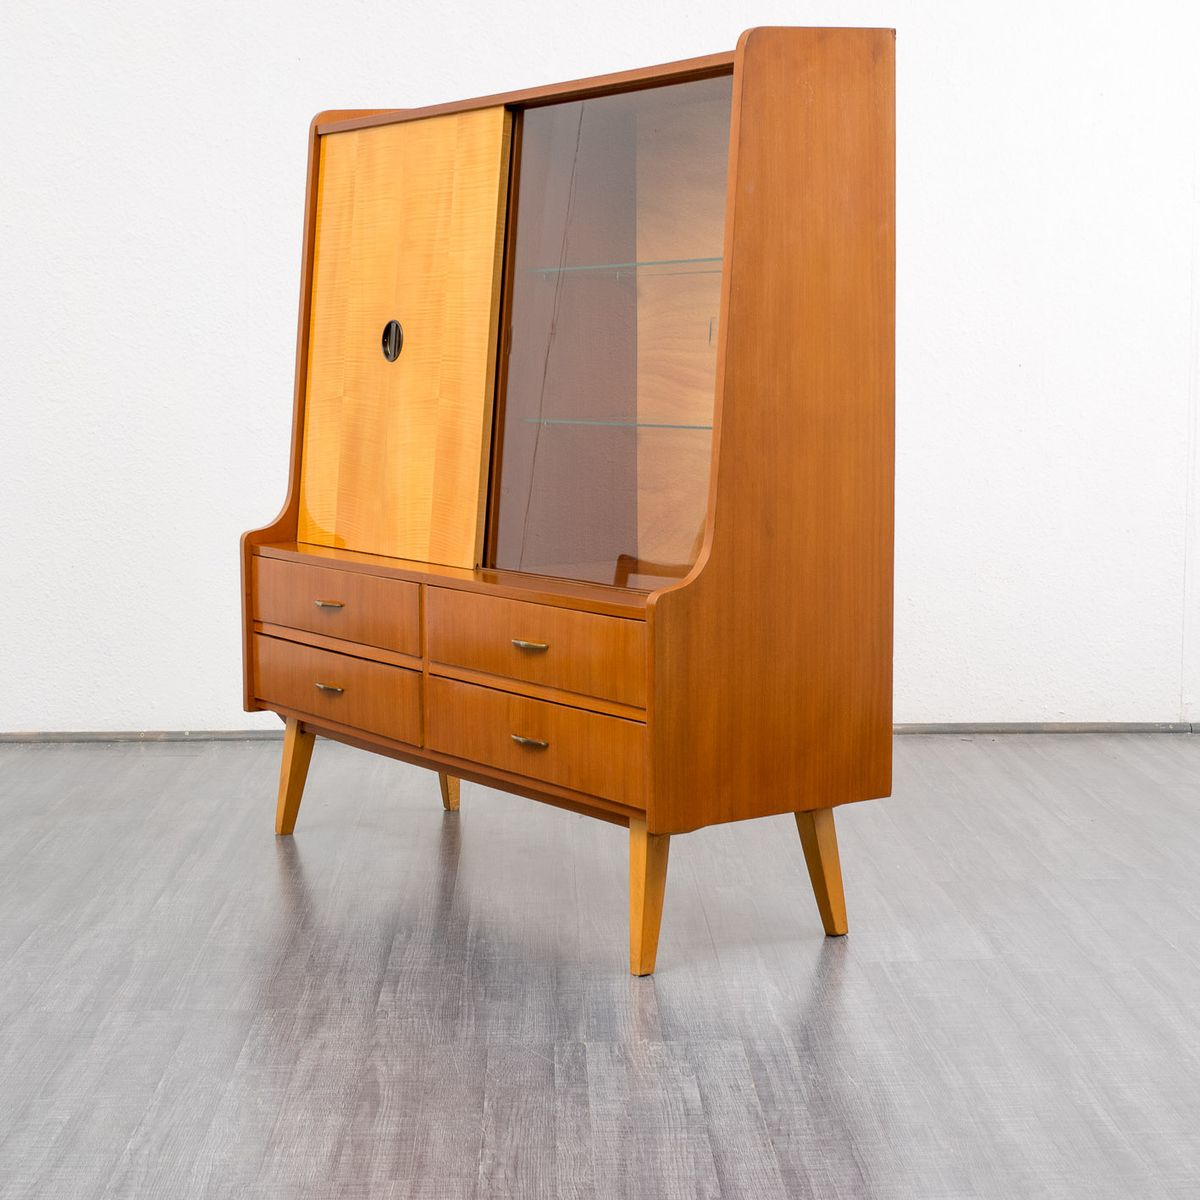 Sale 1950s Kitchen Cabinets: Maple And Makore Cabinet, 1950s For Sale At Pamono